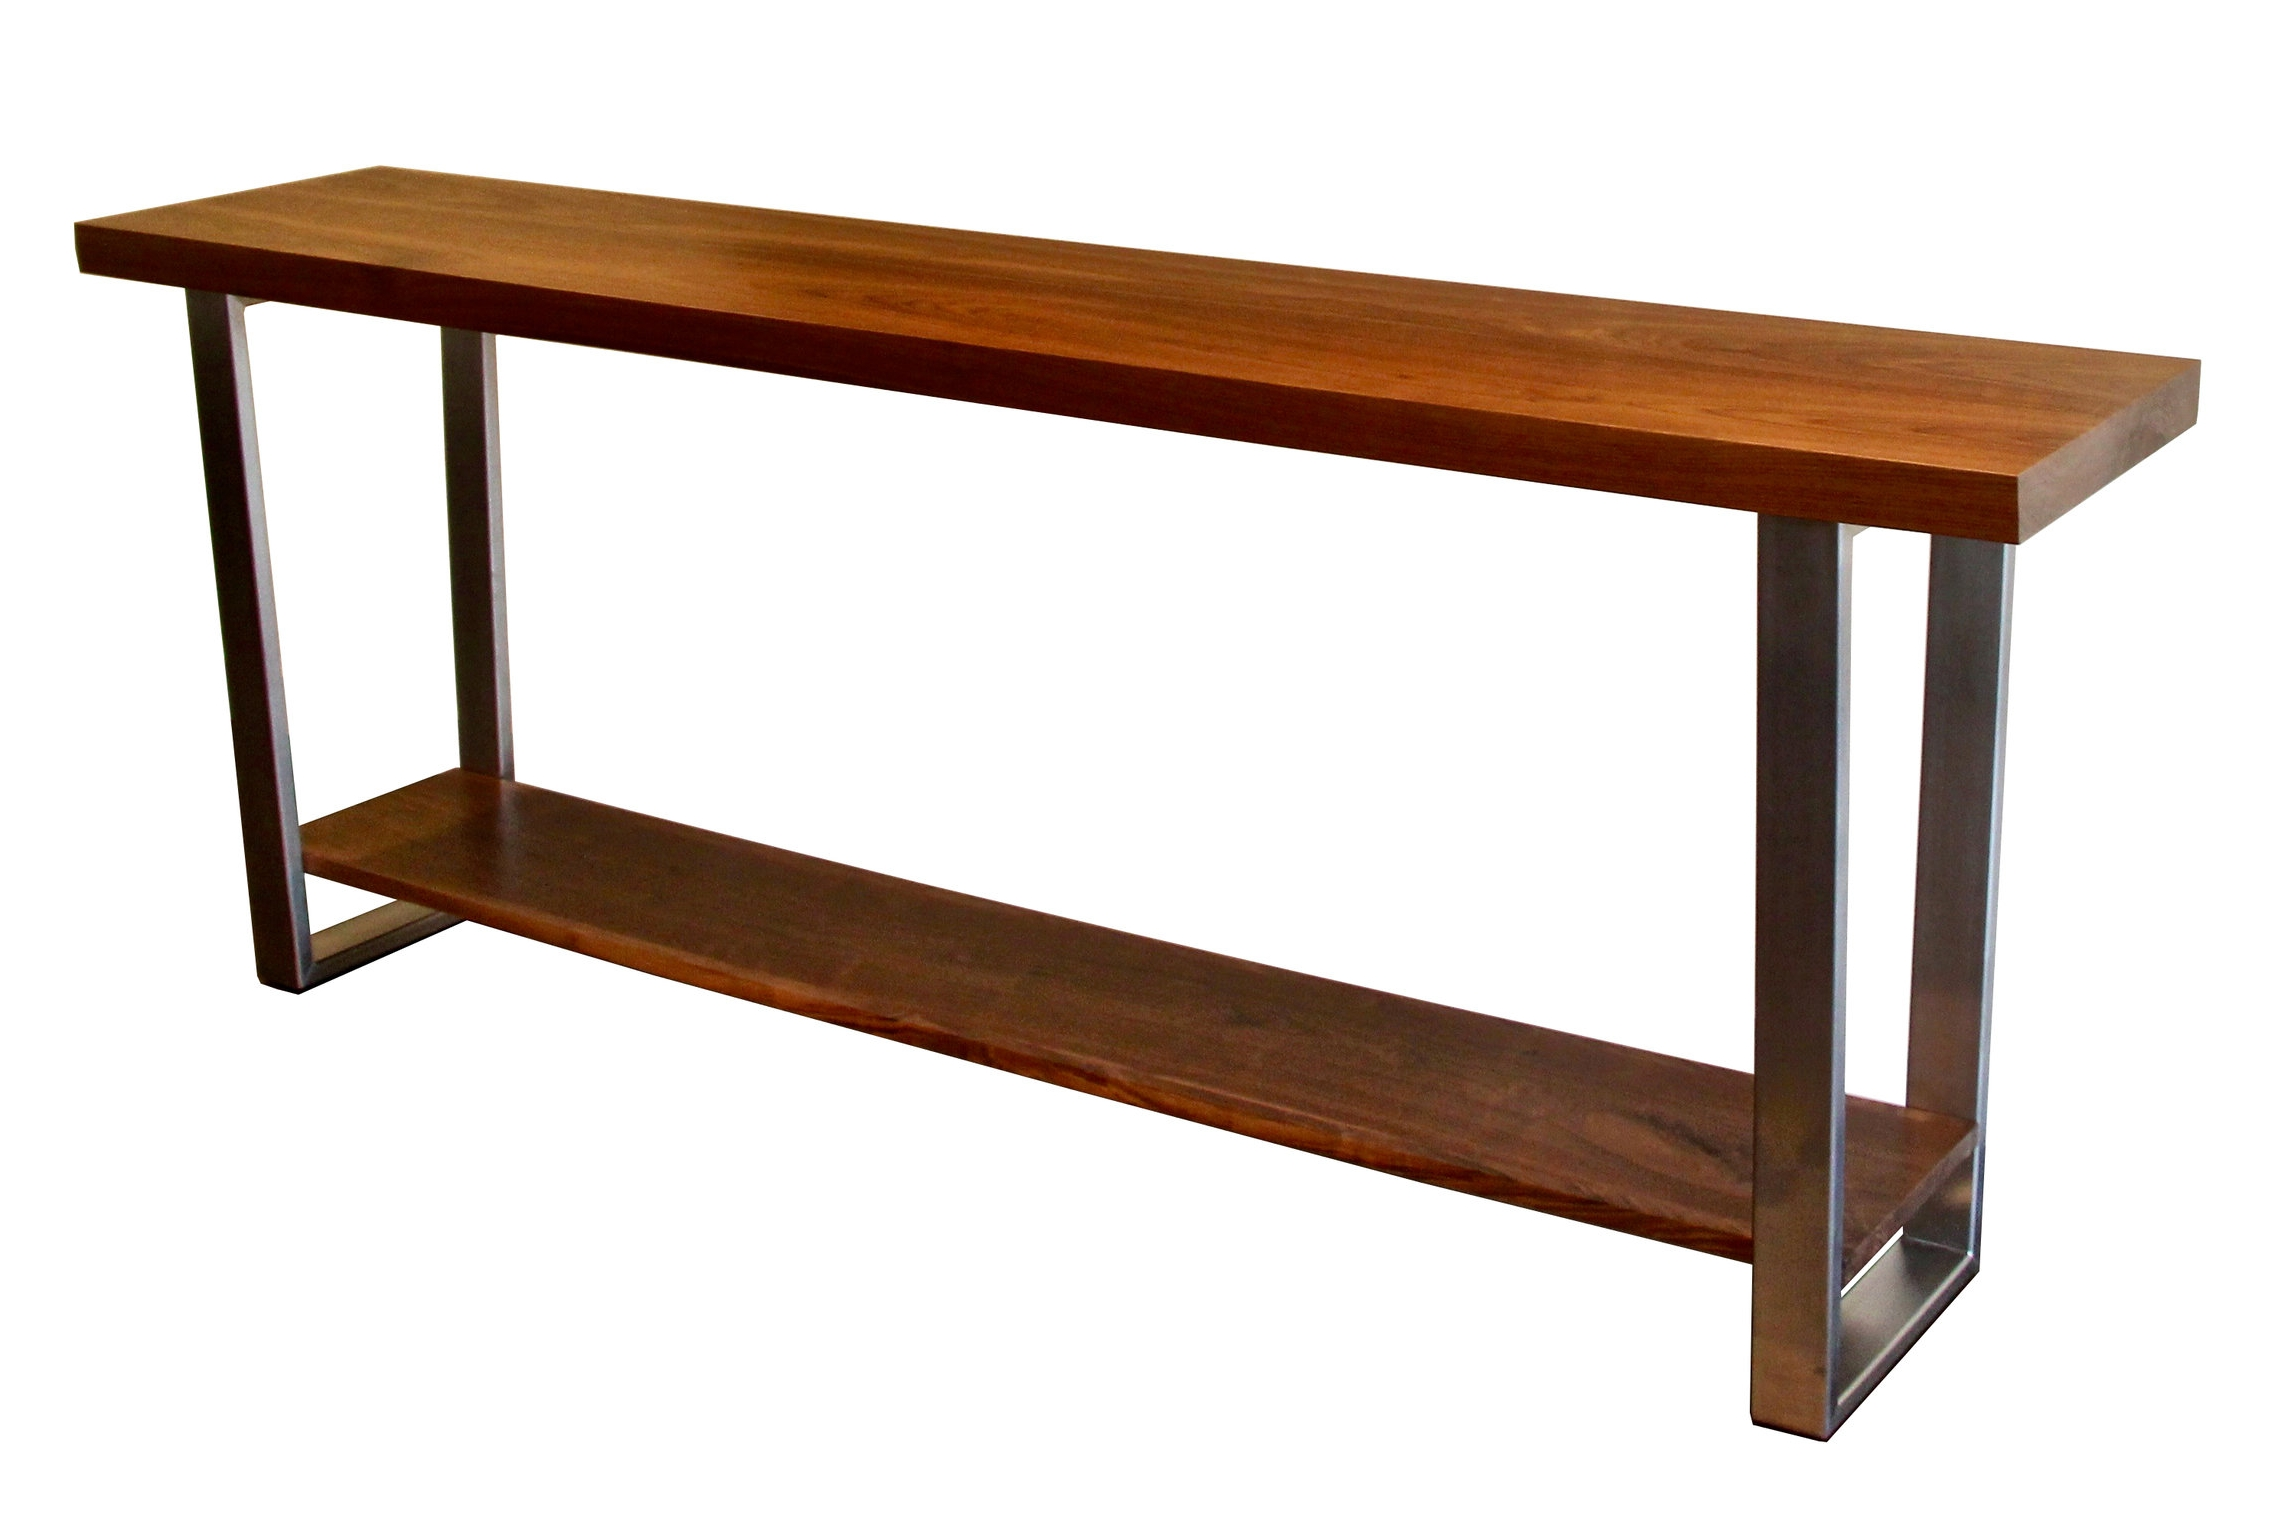 sculpted walnut console - with Brushed Stainless Base